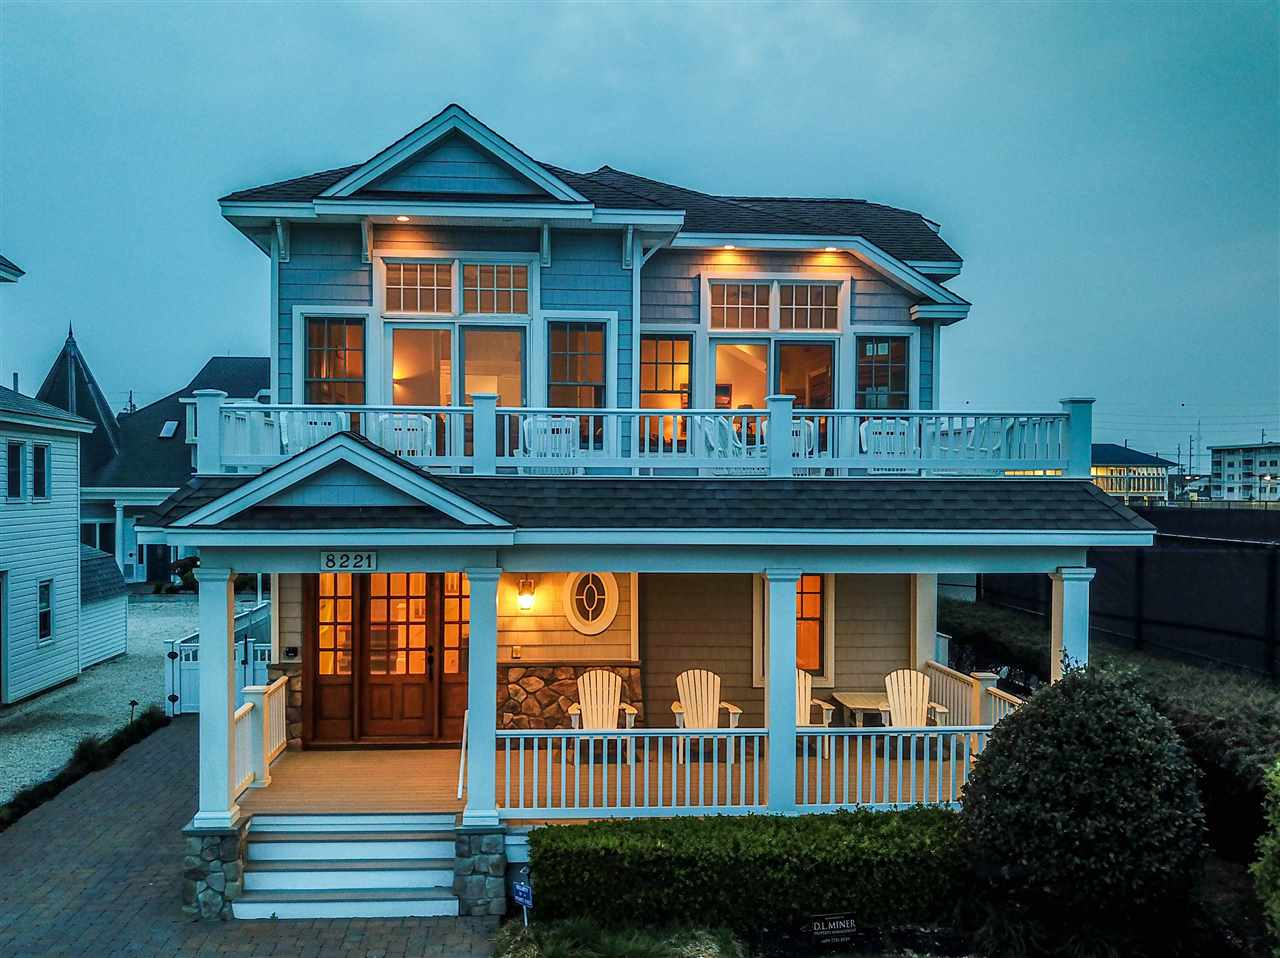 8221 First Avenue - Stone Harbor